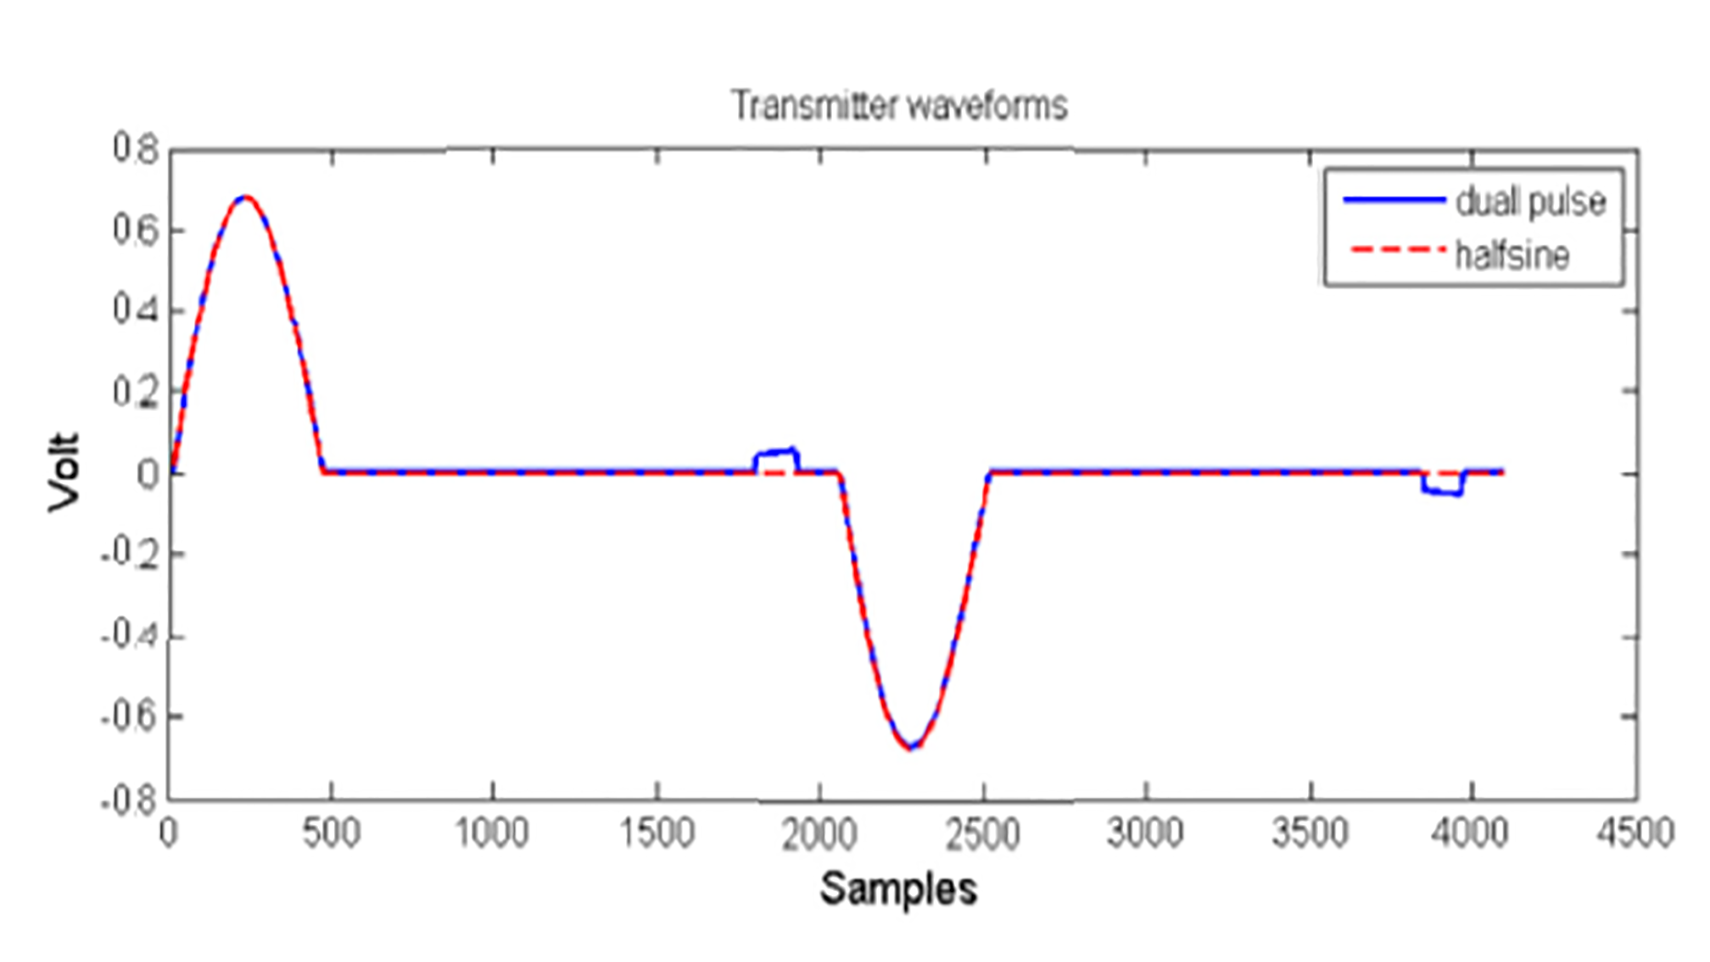 Figure 3 Dual pulse transmitter waveform for simultaneous transmission